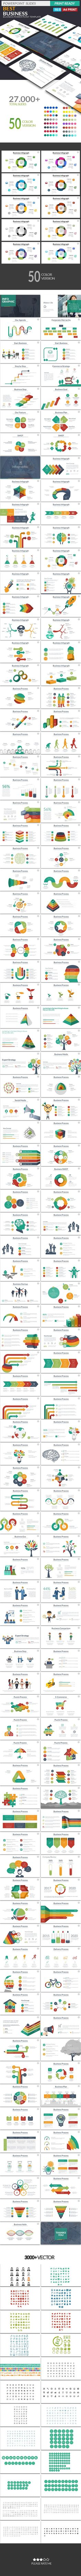 Best Business -  PowerPoint Template - Business PowerPoint Templates